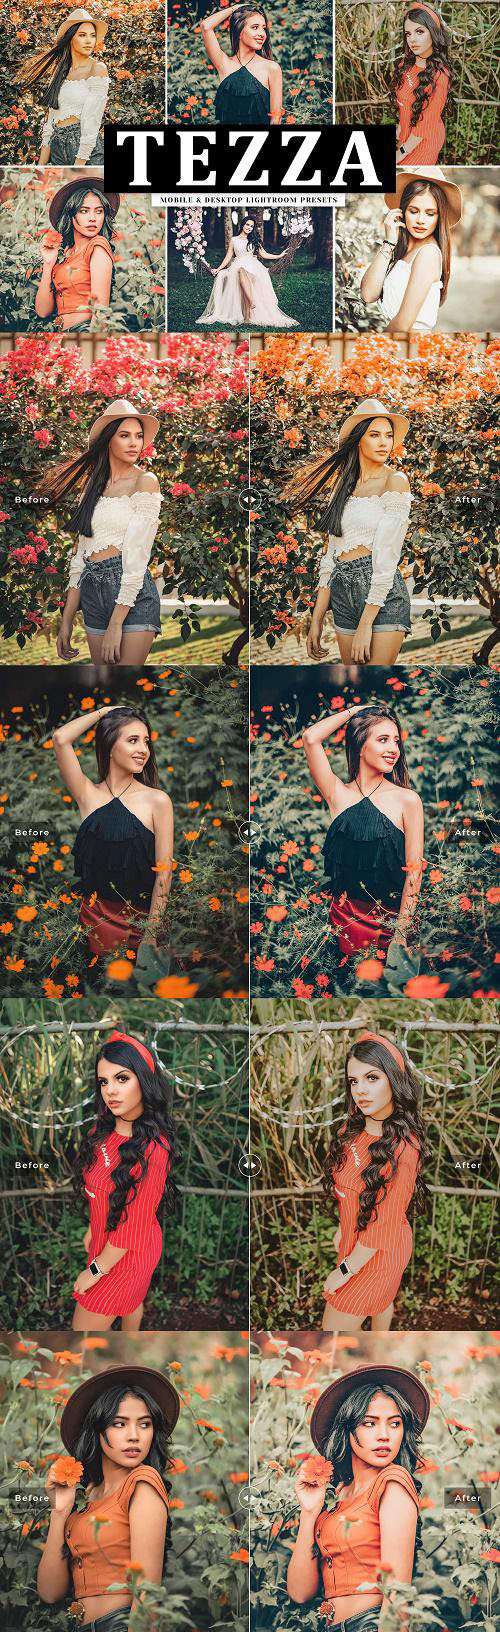 Tezza Lightroom Presets Pack - 4084995